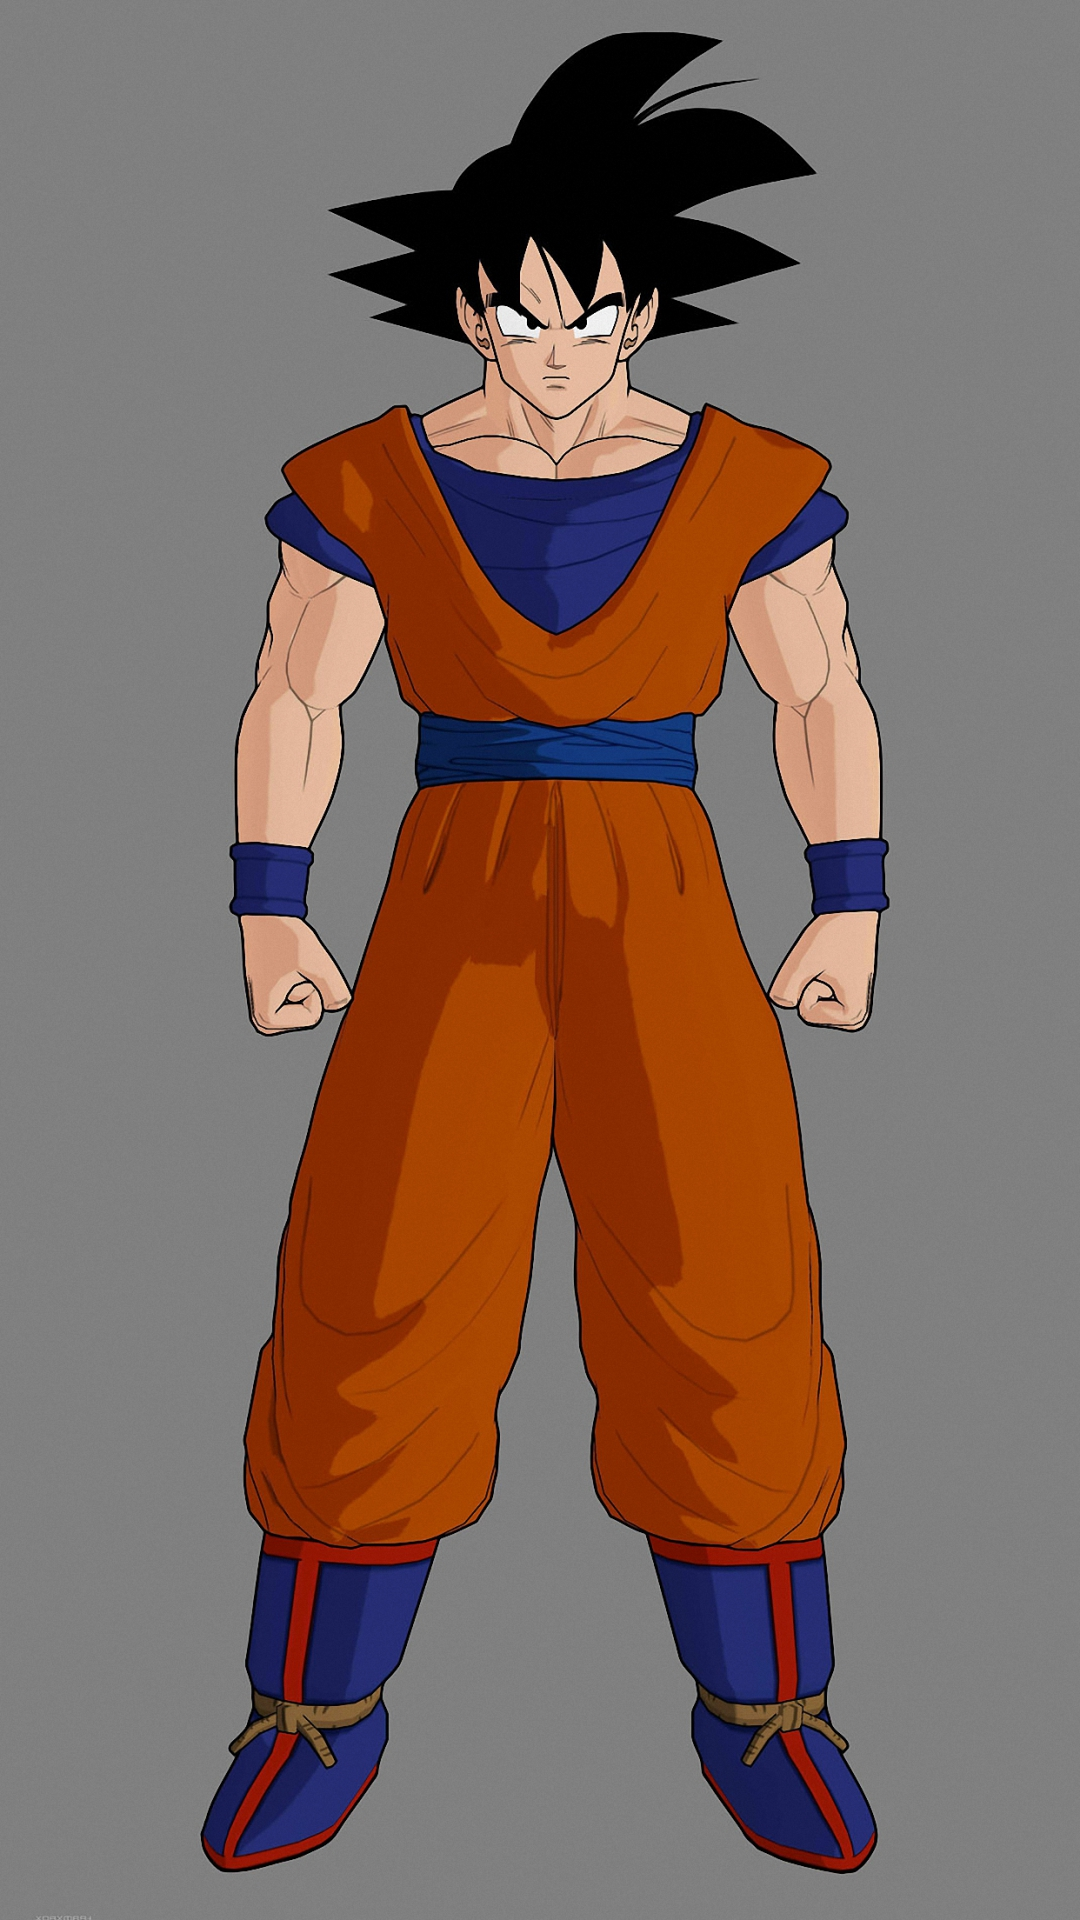 HD 1080x1920 son goku iphone 6 plus wallpapers 1080x1920